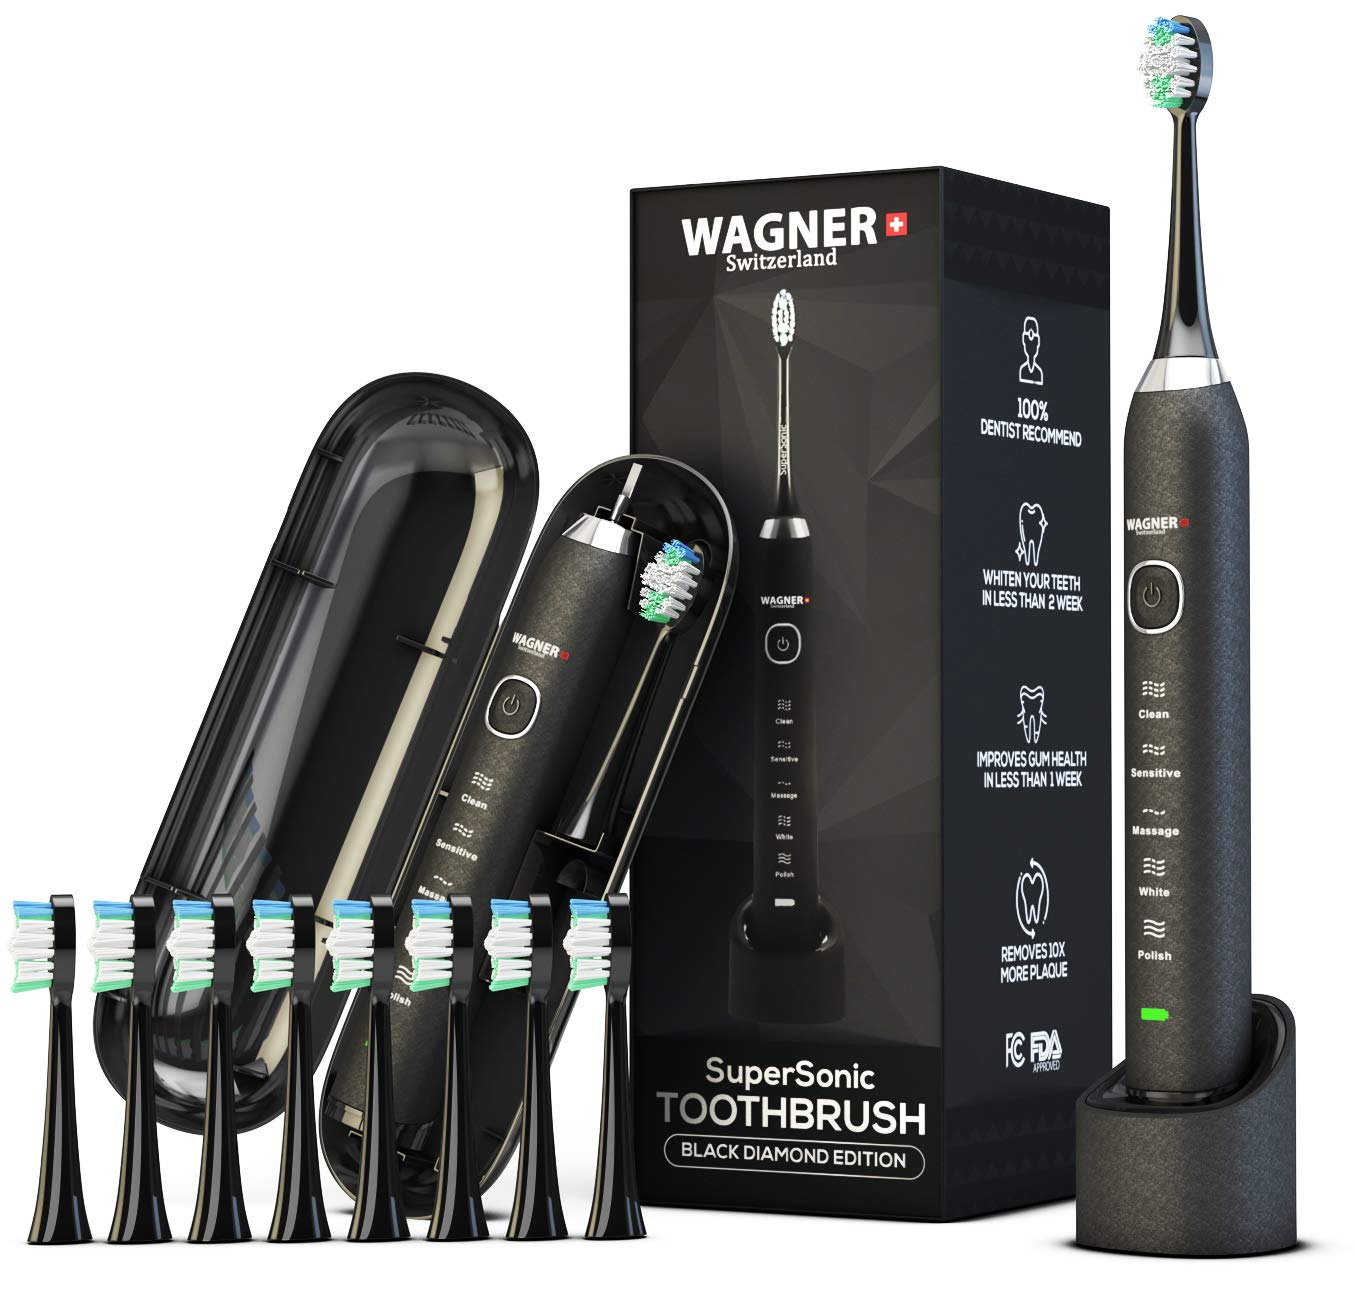 WAGNER Switzerland. SuperSonic, ULTRA Whitening | 48,000 VPM Wireless Electric Toothbrush | 5 Modes w Smart Timer | 8 DuPont bristles | Travel Case | 100% Dentist Recommended & Designed